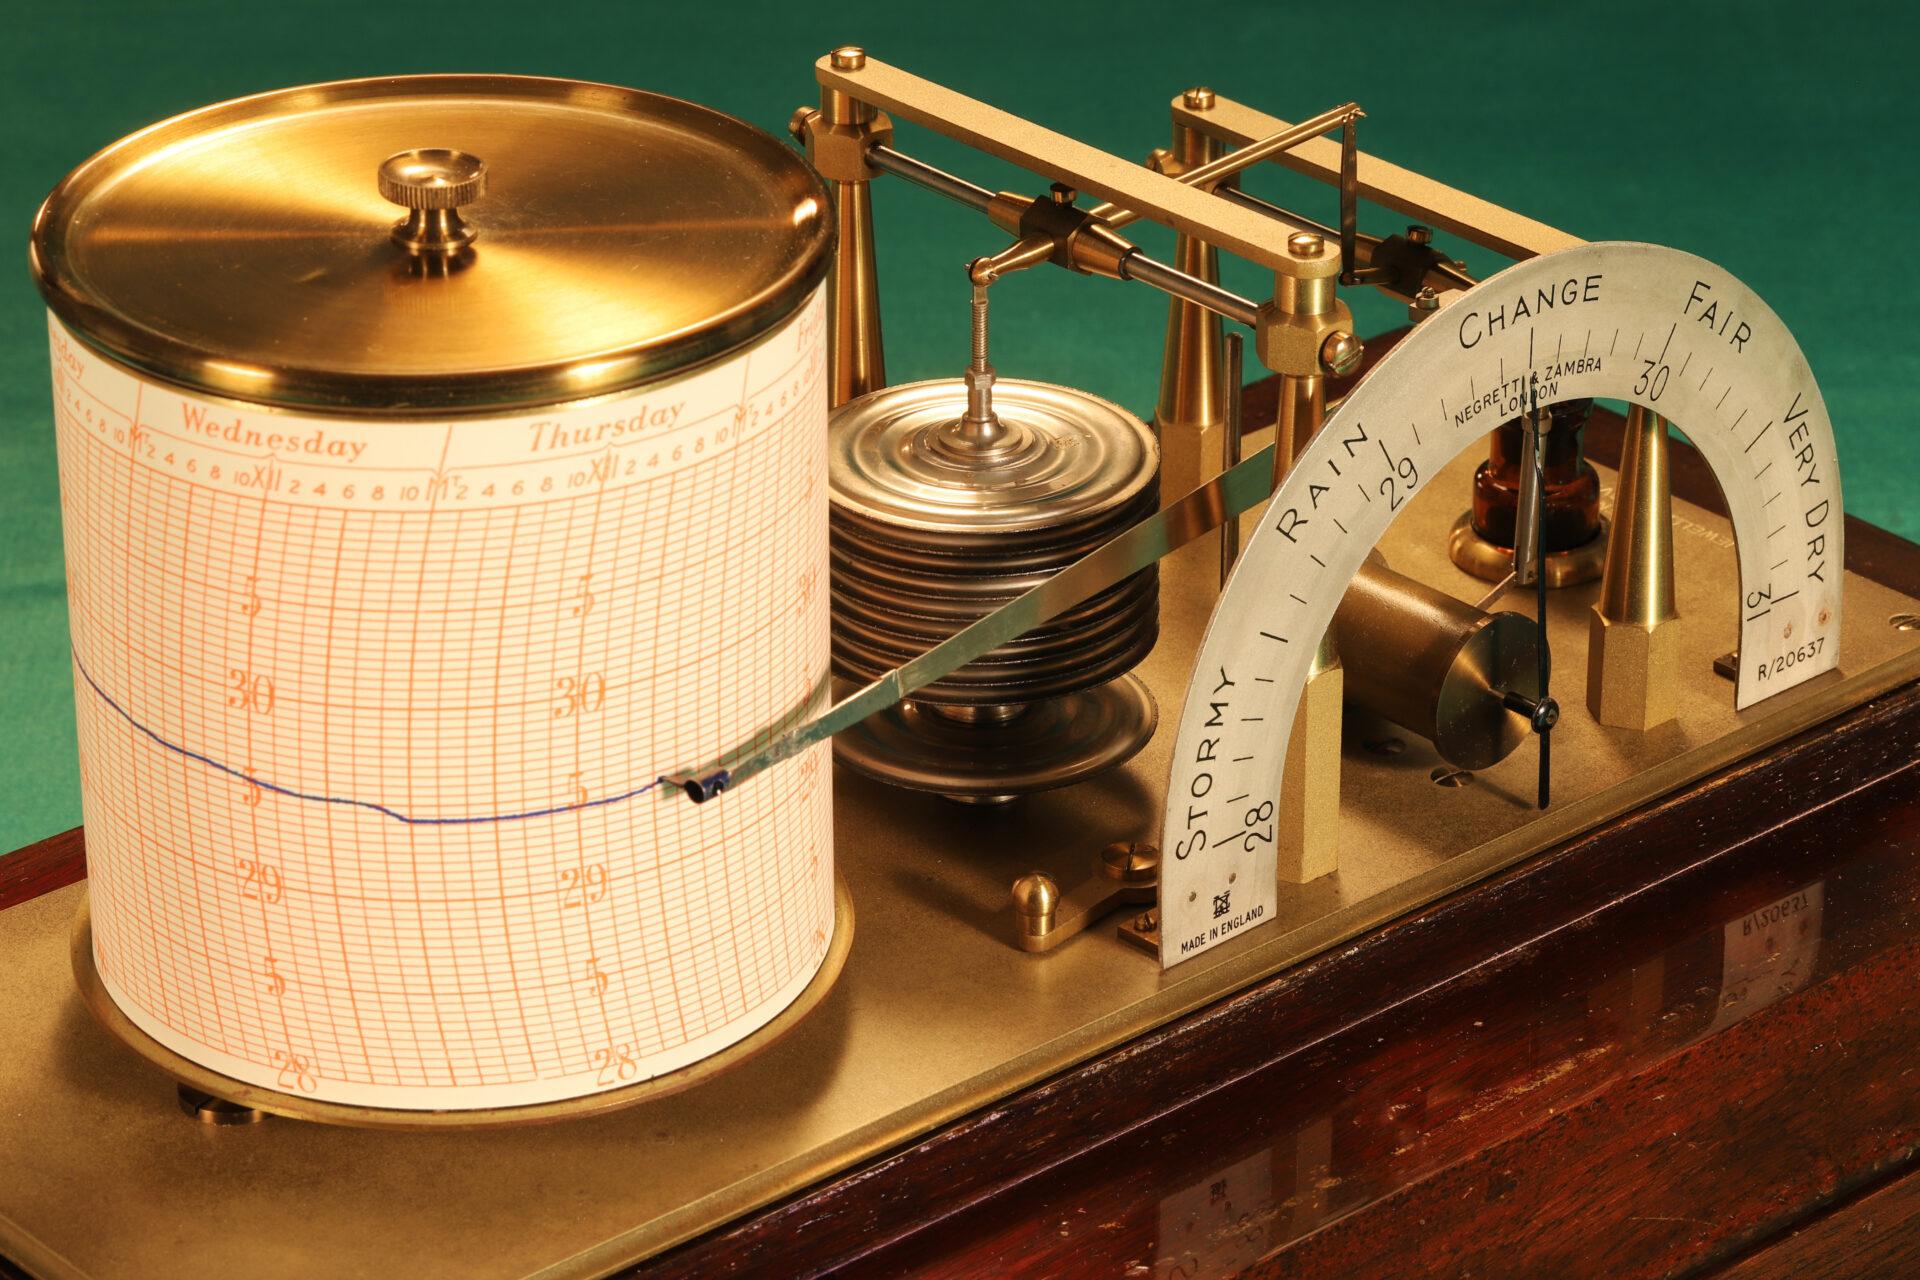 Image of Negretti & Zambra Regent Barograph R20637 c1930 with lid removed taken from lefthand side